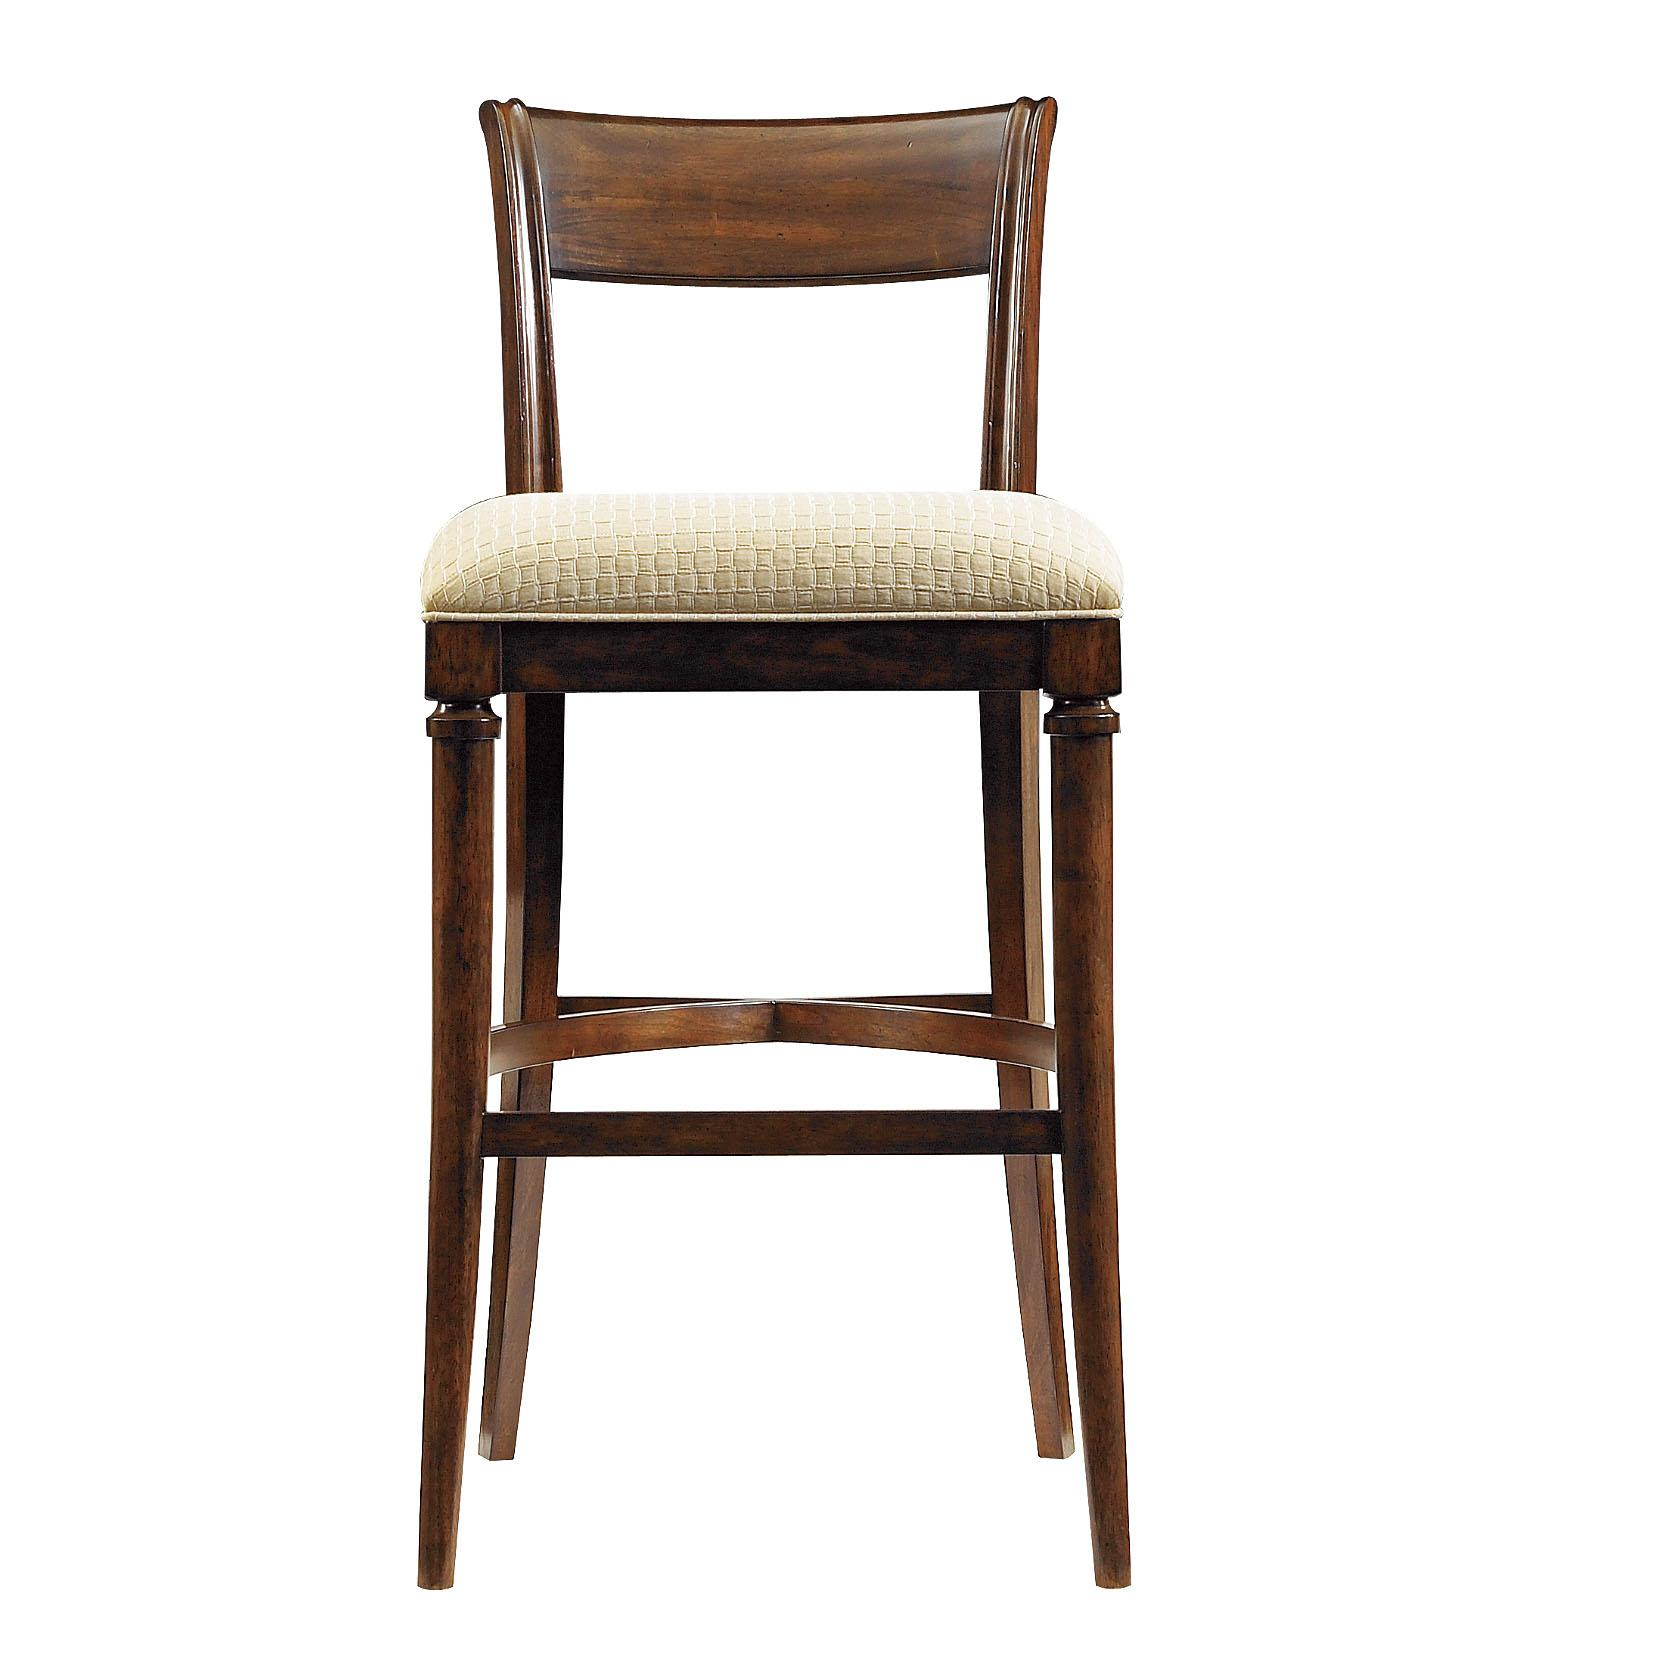 Stanley Furniture Avalon Heights Tempo Bar Stool - Item Number: 193-11-73